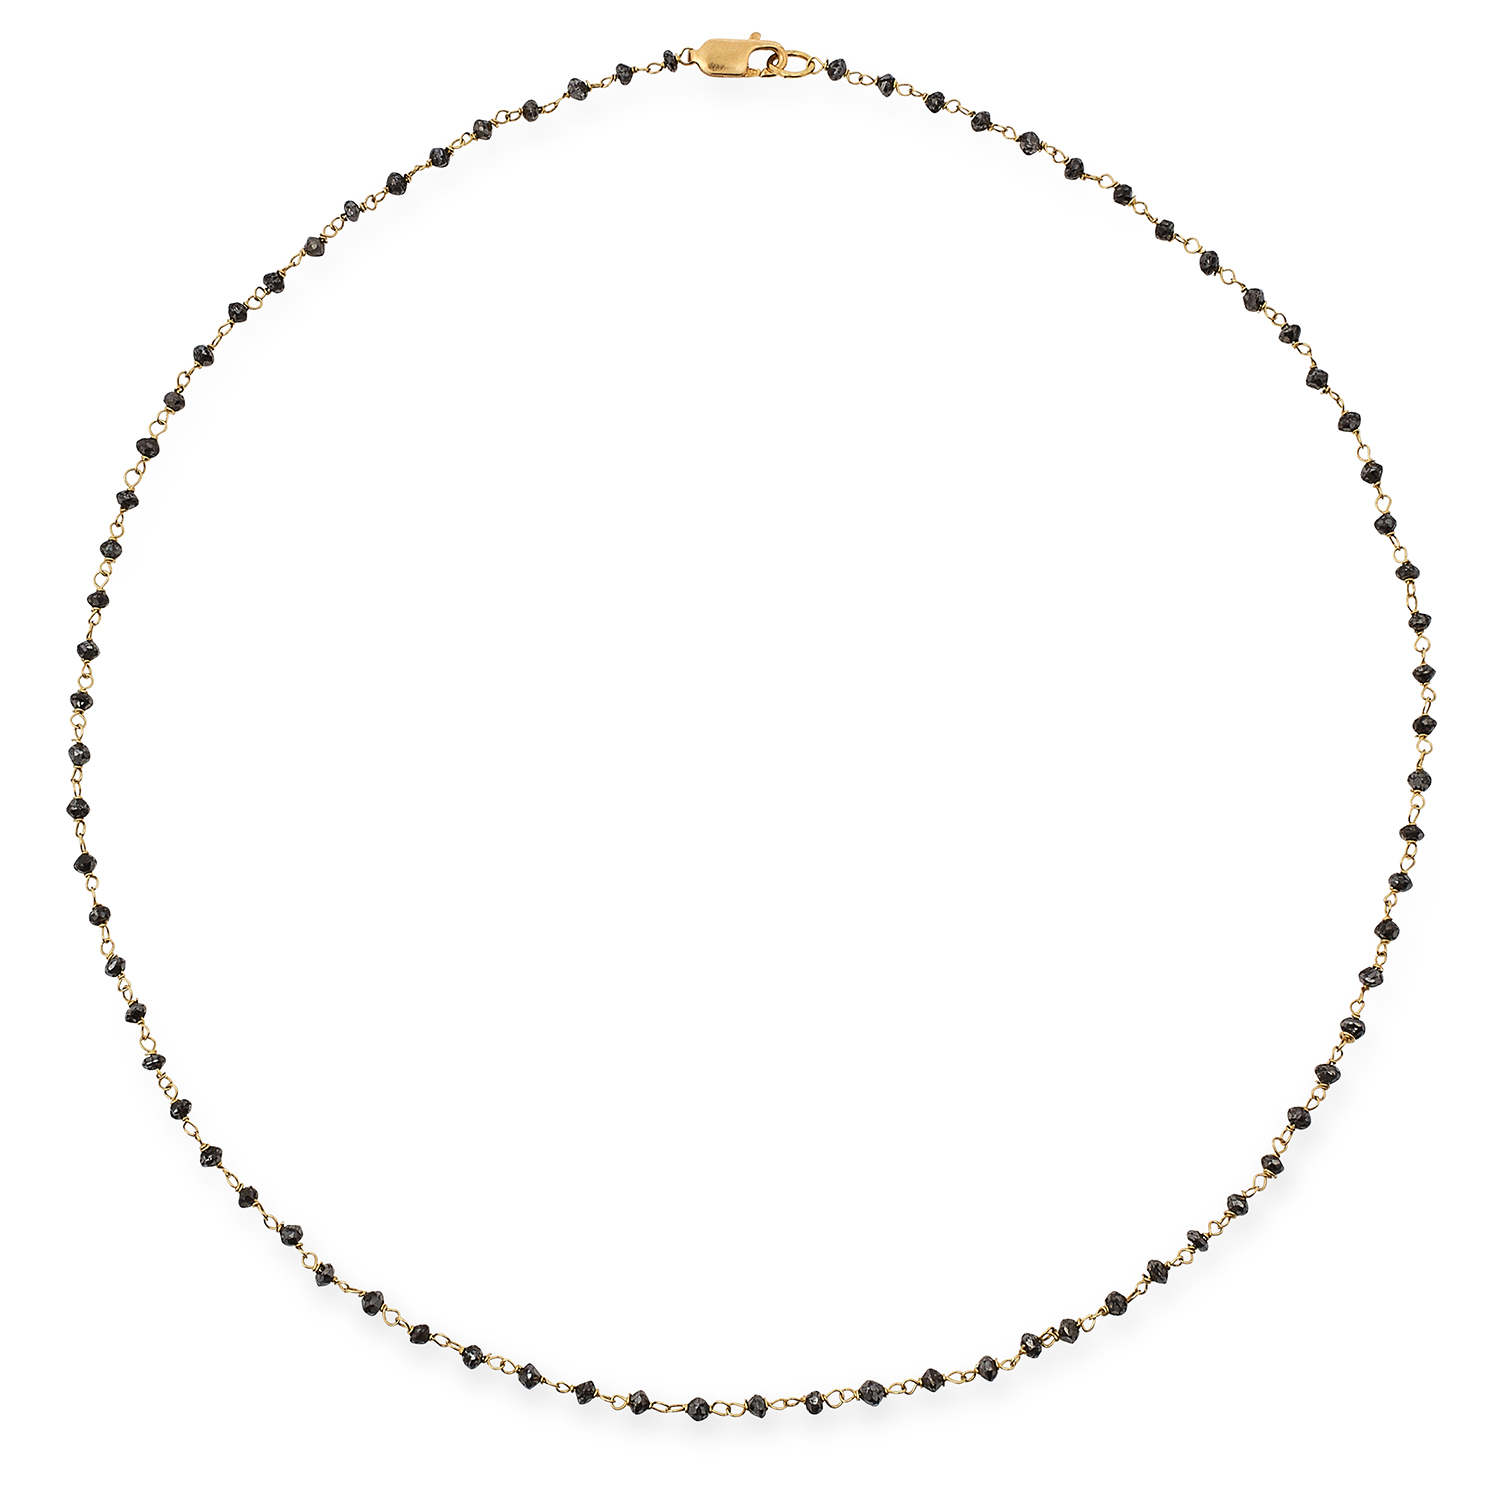 BLACK DIAMOND CHAIN NECKLACE set with faceted black diamond beads, 40cm, 3.2g.